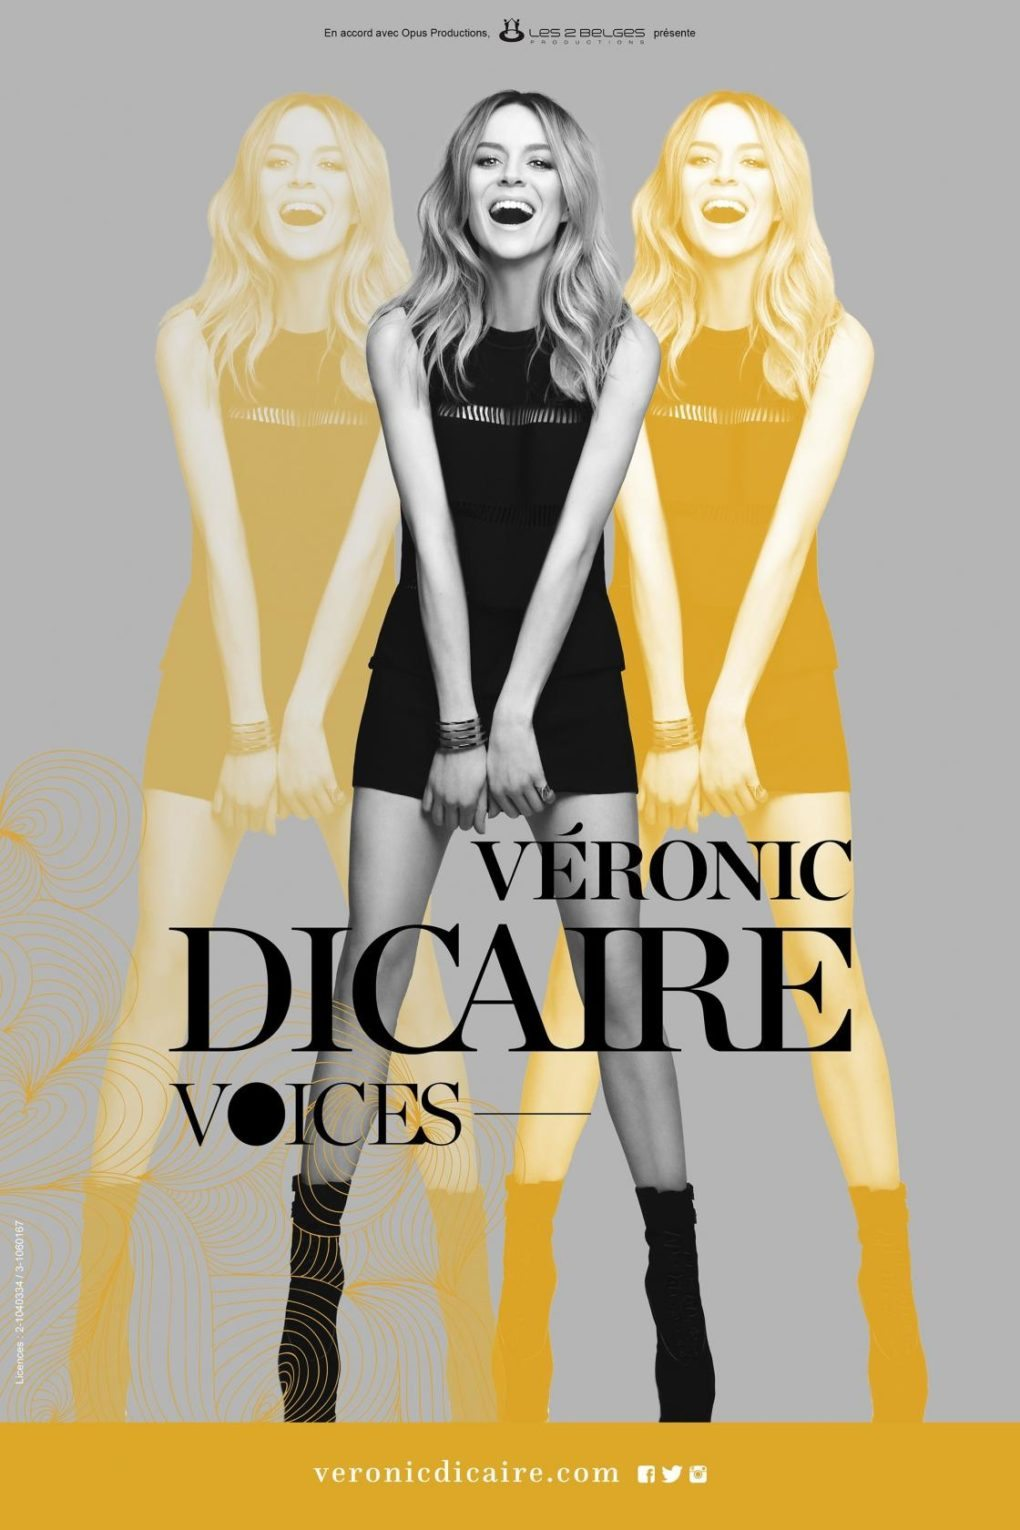 Véronic Dicaire Voices Saint-Herblain